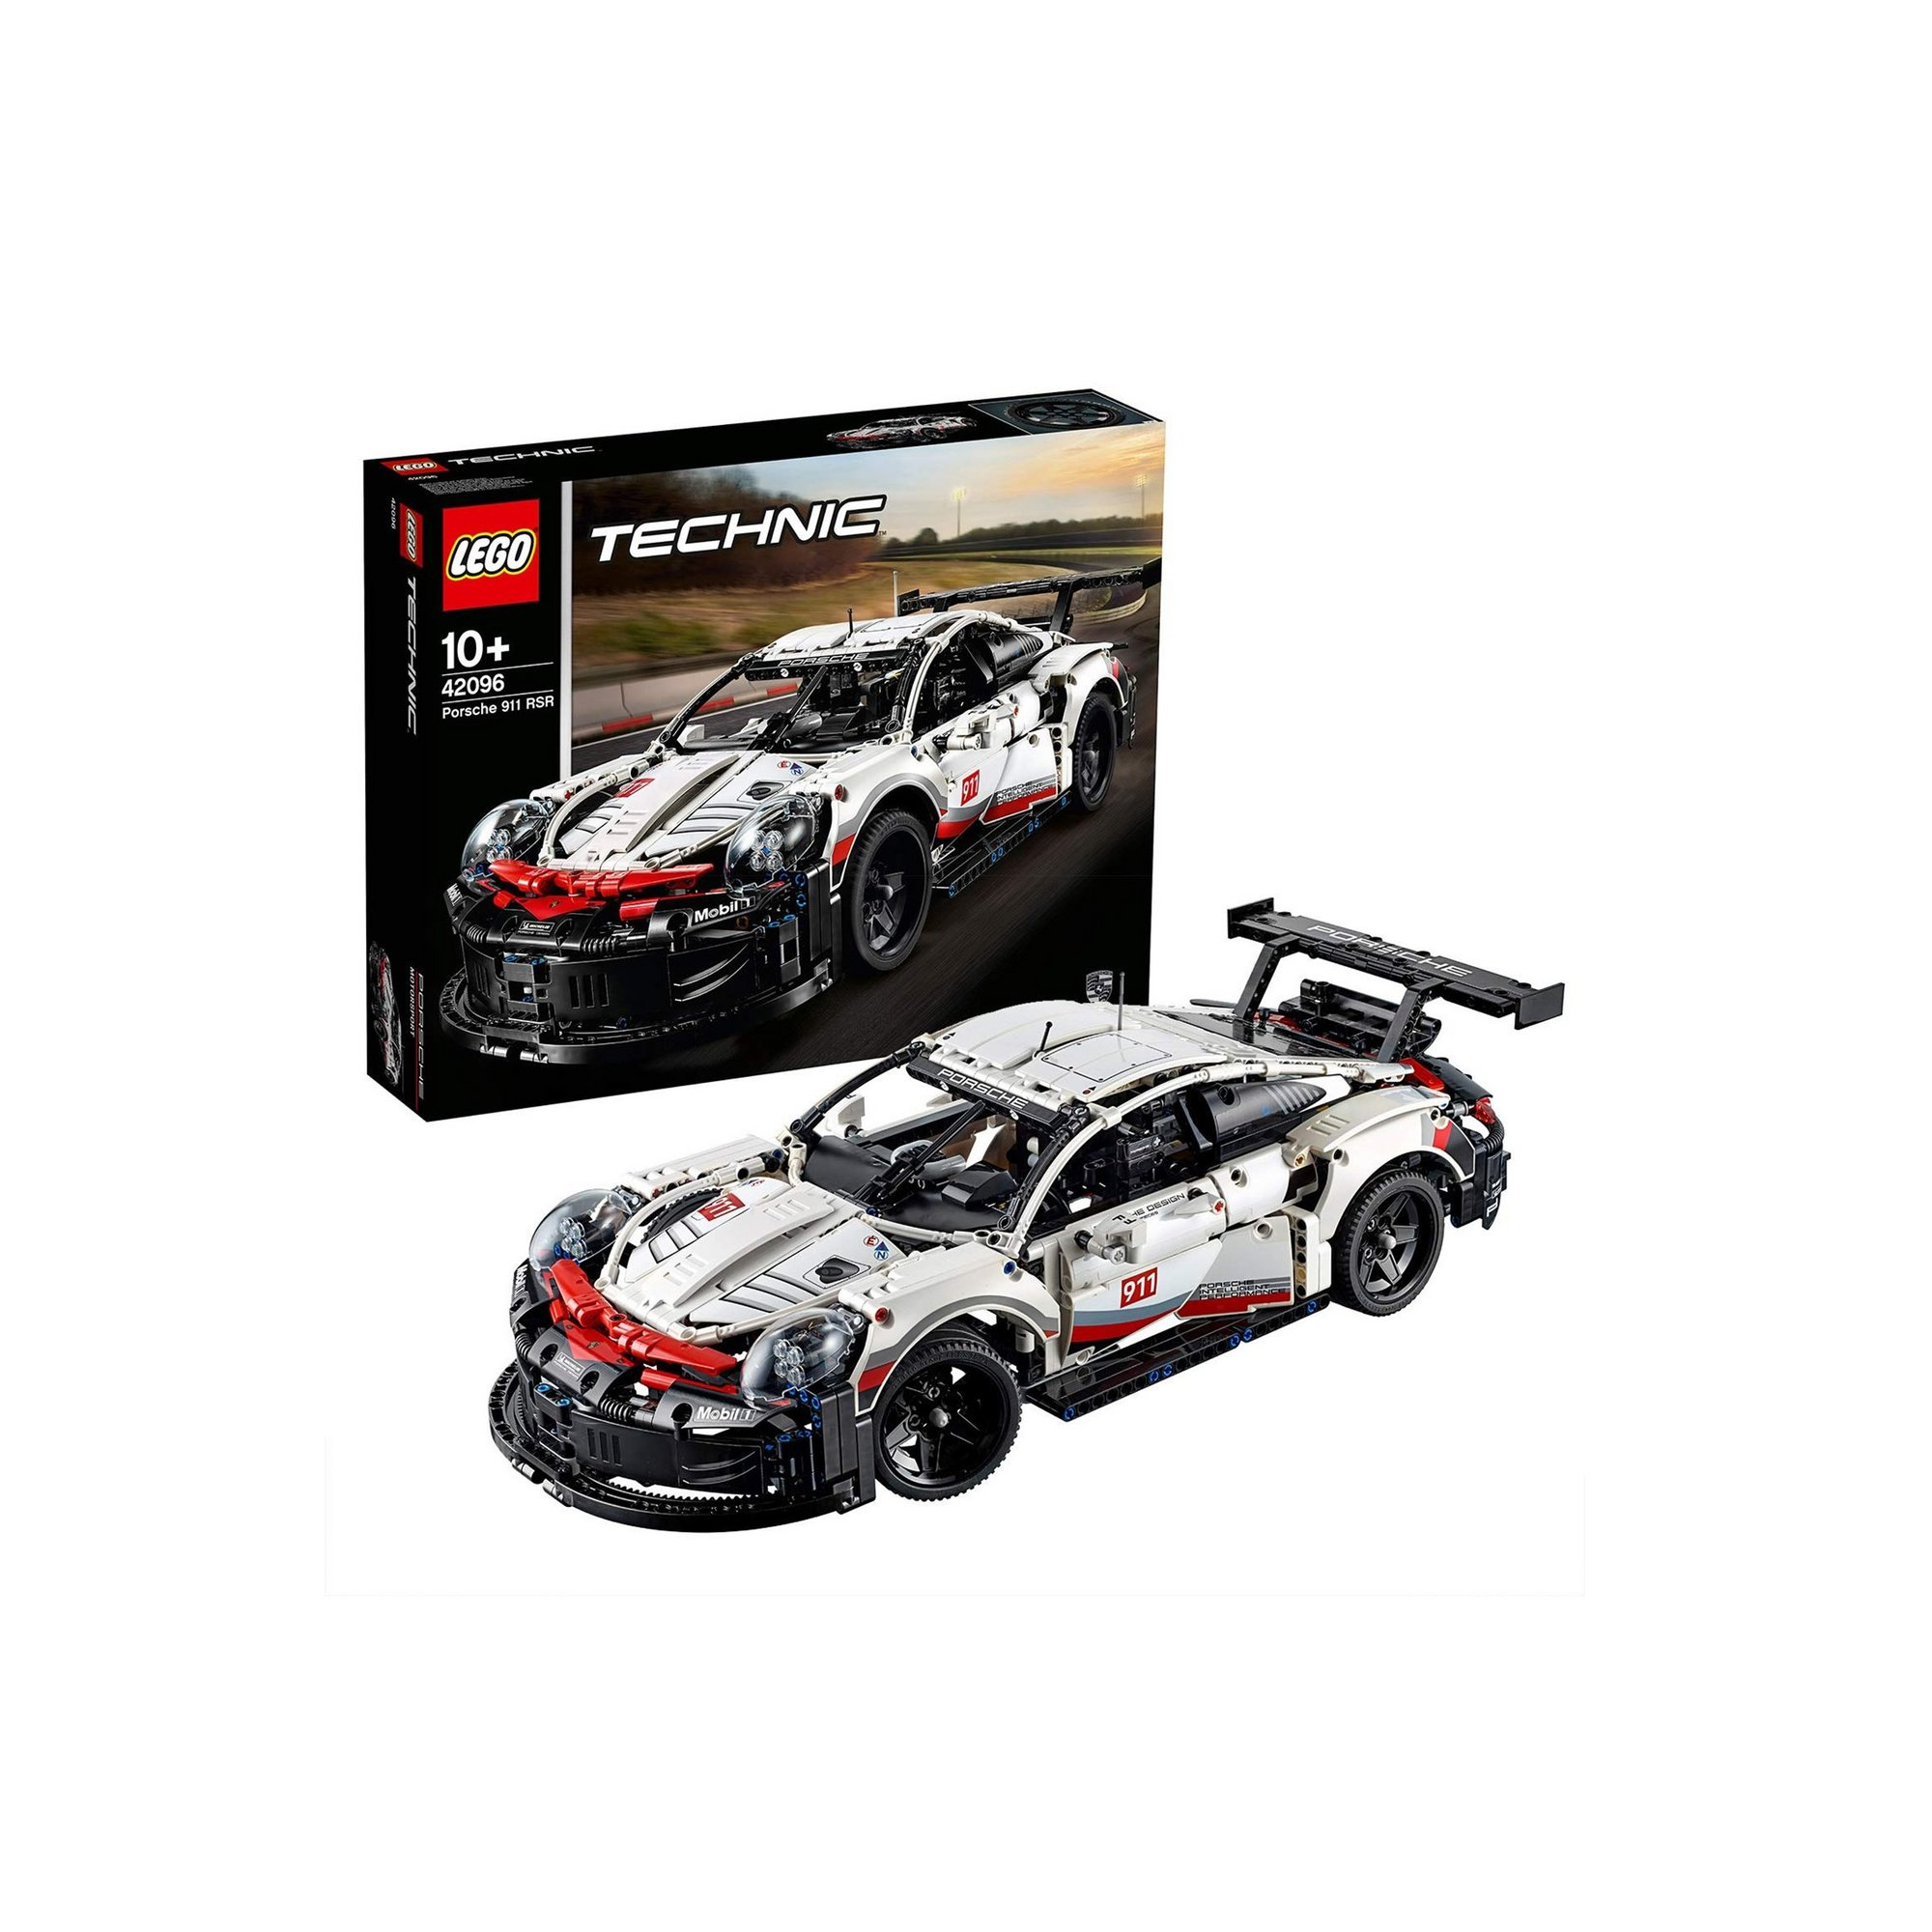 Image of LEGO Technic Porsche 911 RSR